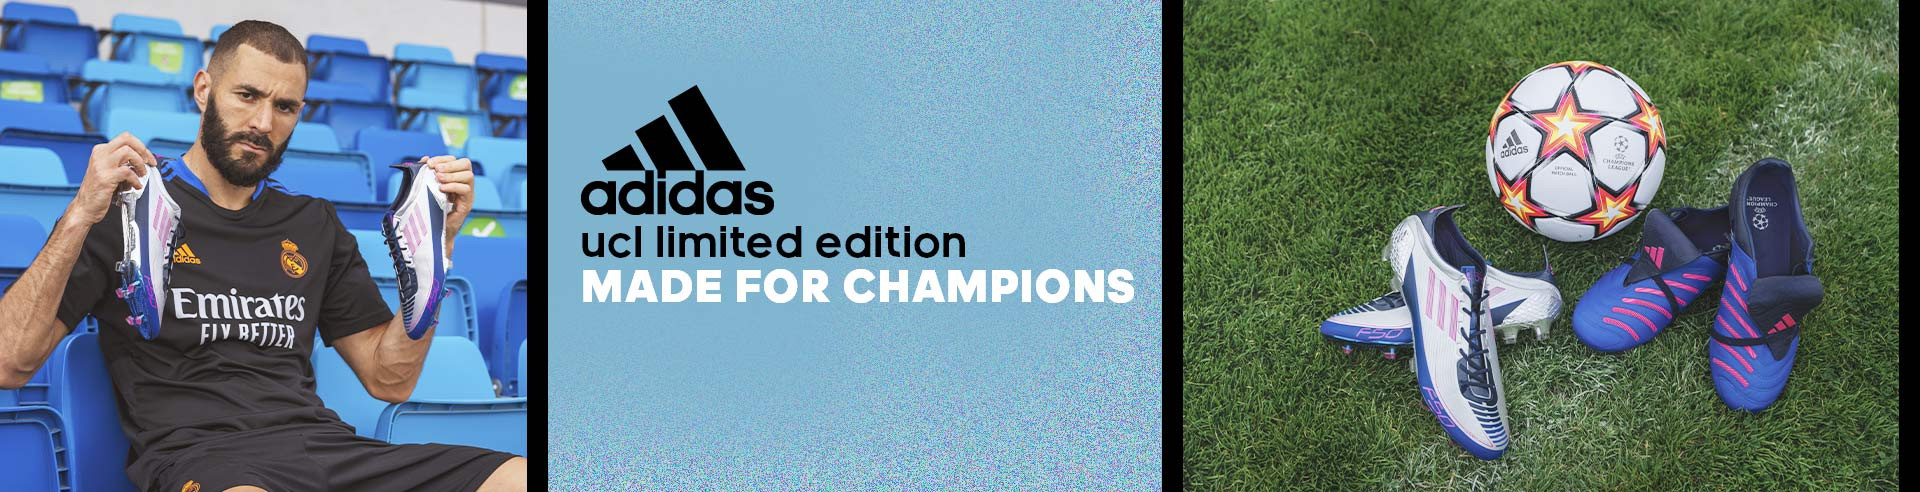 ADIDAS UCL LIMITED EDITION